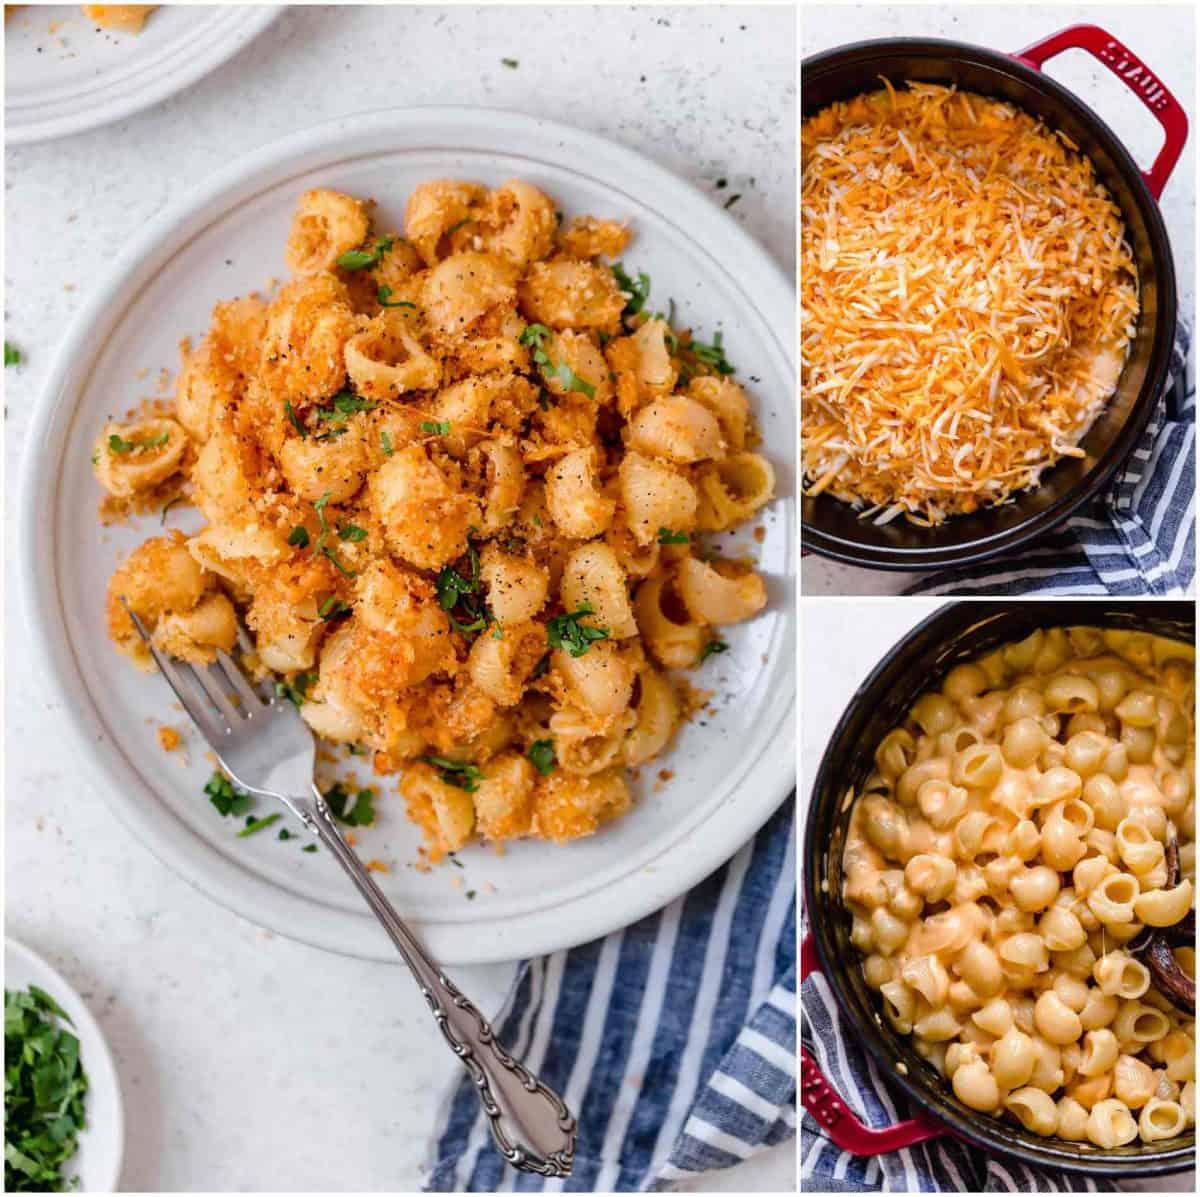 This mac and cheese recipe has a bit of a kick to it and it's the perfect weeknight comfort meal when you are craving pasta and cheese!